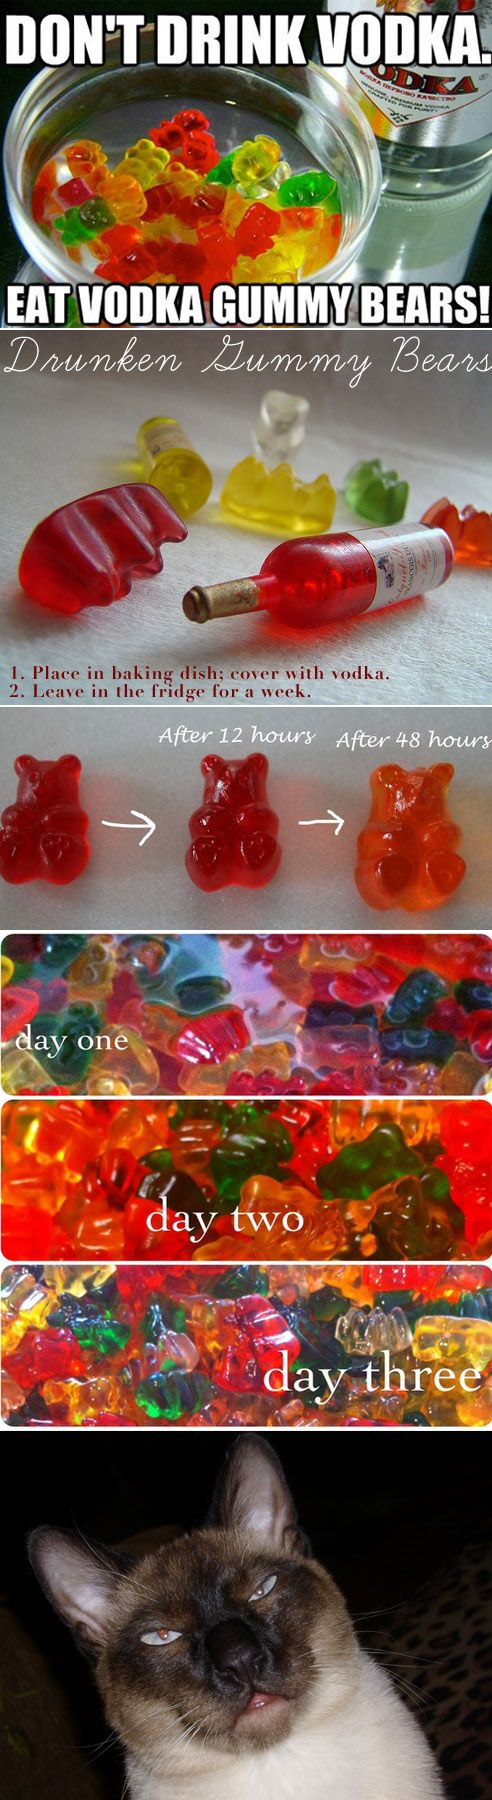 And More Excitingly Vodka Gummy Bears Vodka Gummy Bears Fun Drinks Drunken Gummy Bears